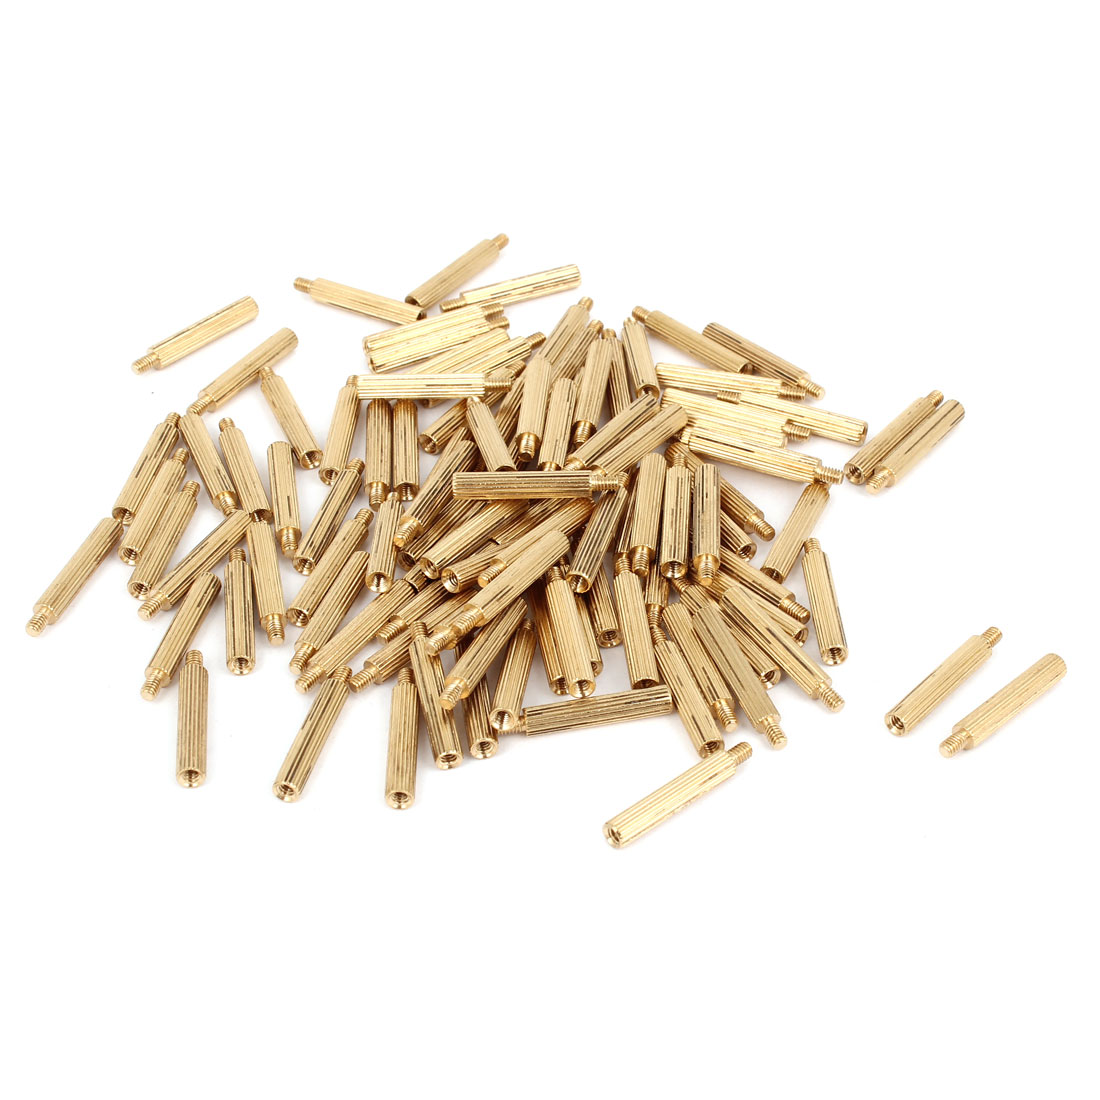 100 Pcs M2 Female Thread Cylindrical Brass Stand-off Support M2x16mm